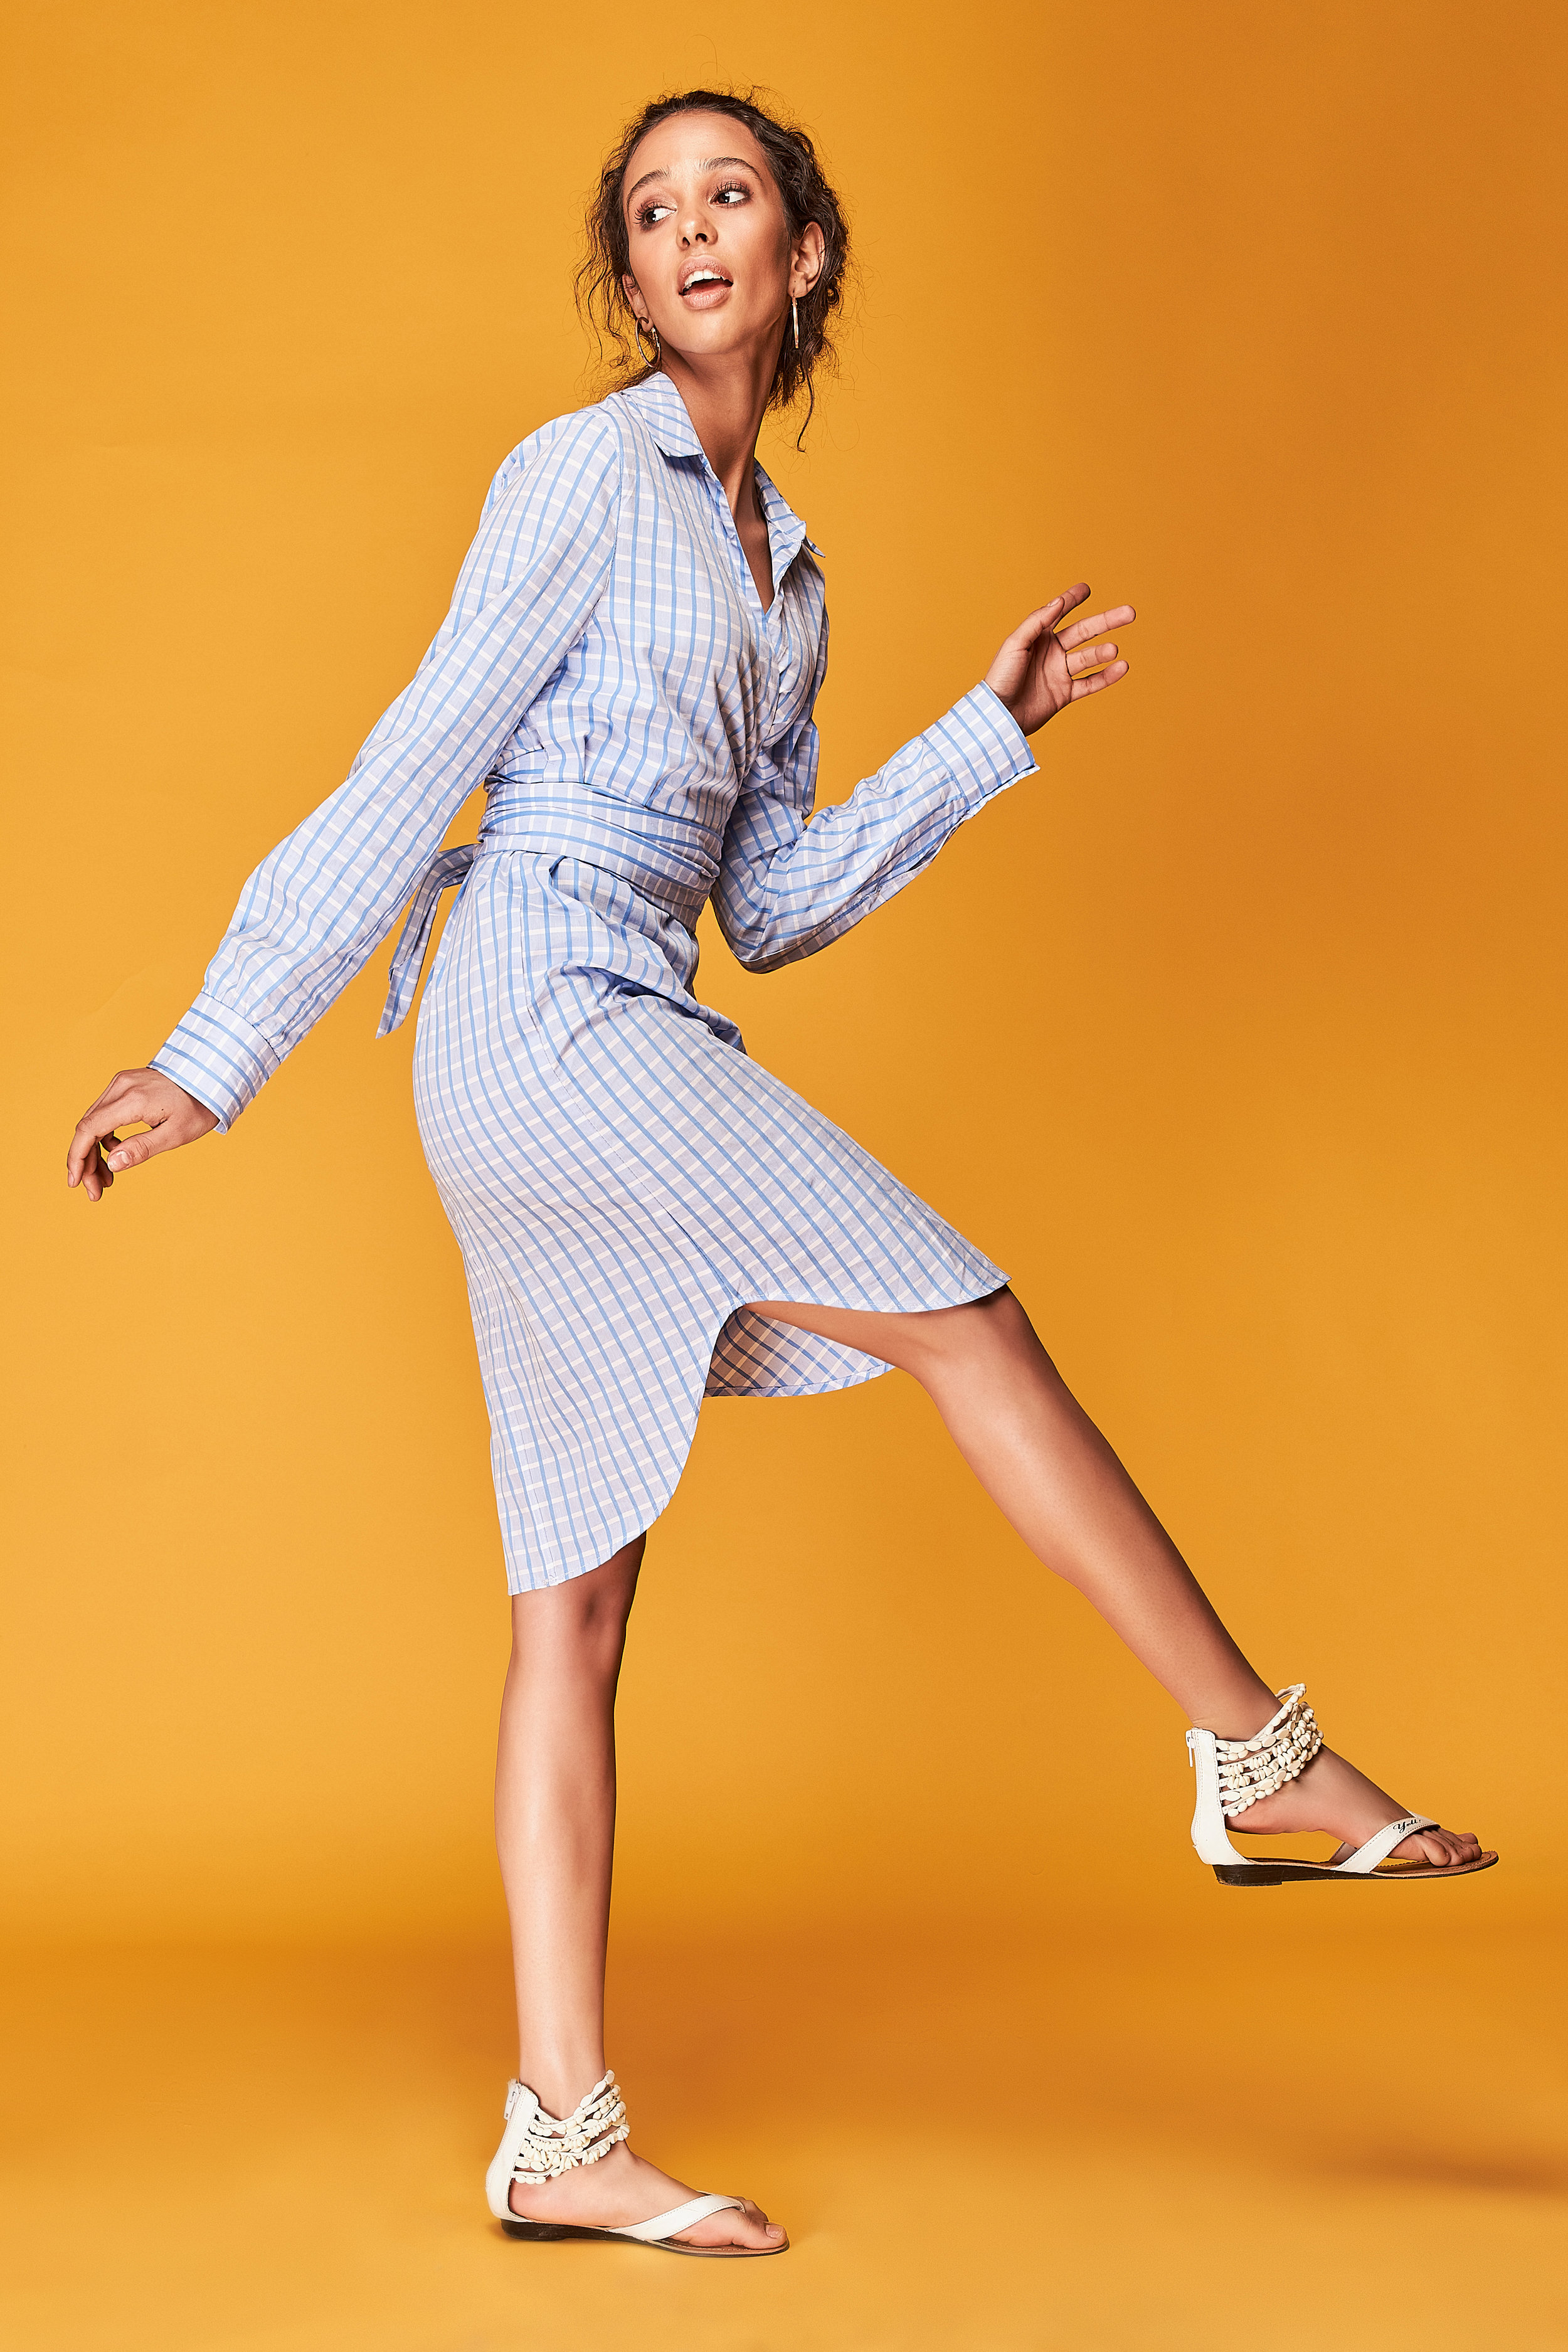 Full length portrait of tanned female model with curly brown hair, dressed in blue plaid shirt dress. Dynamic poses. Orange background